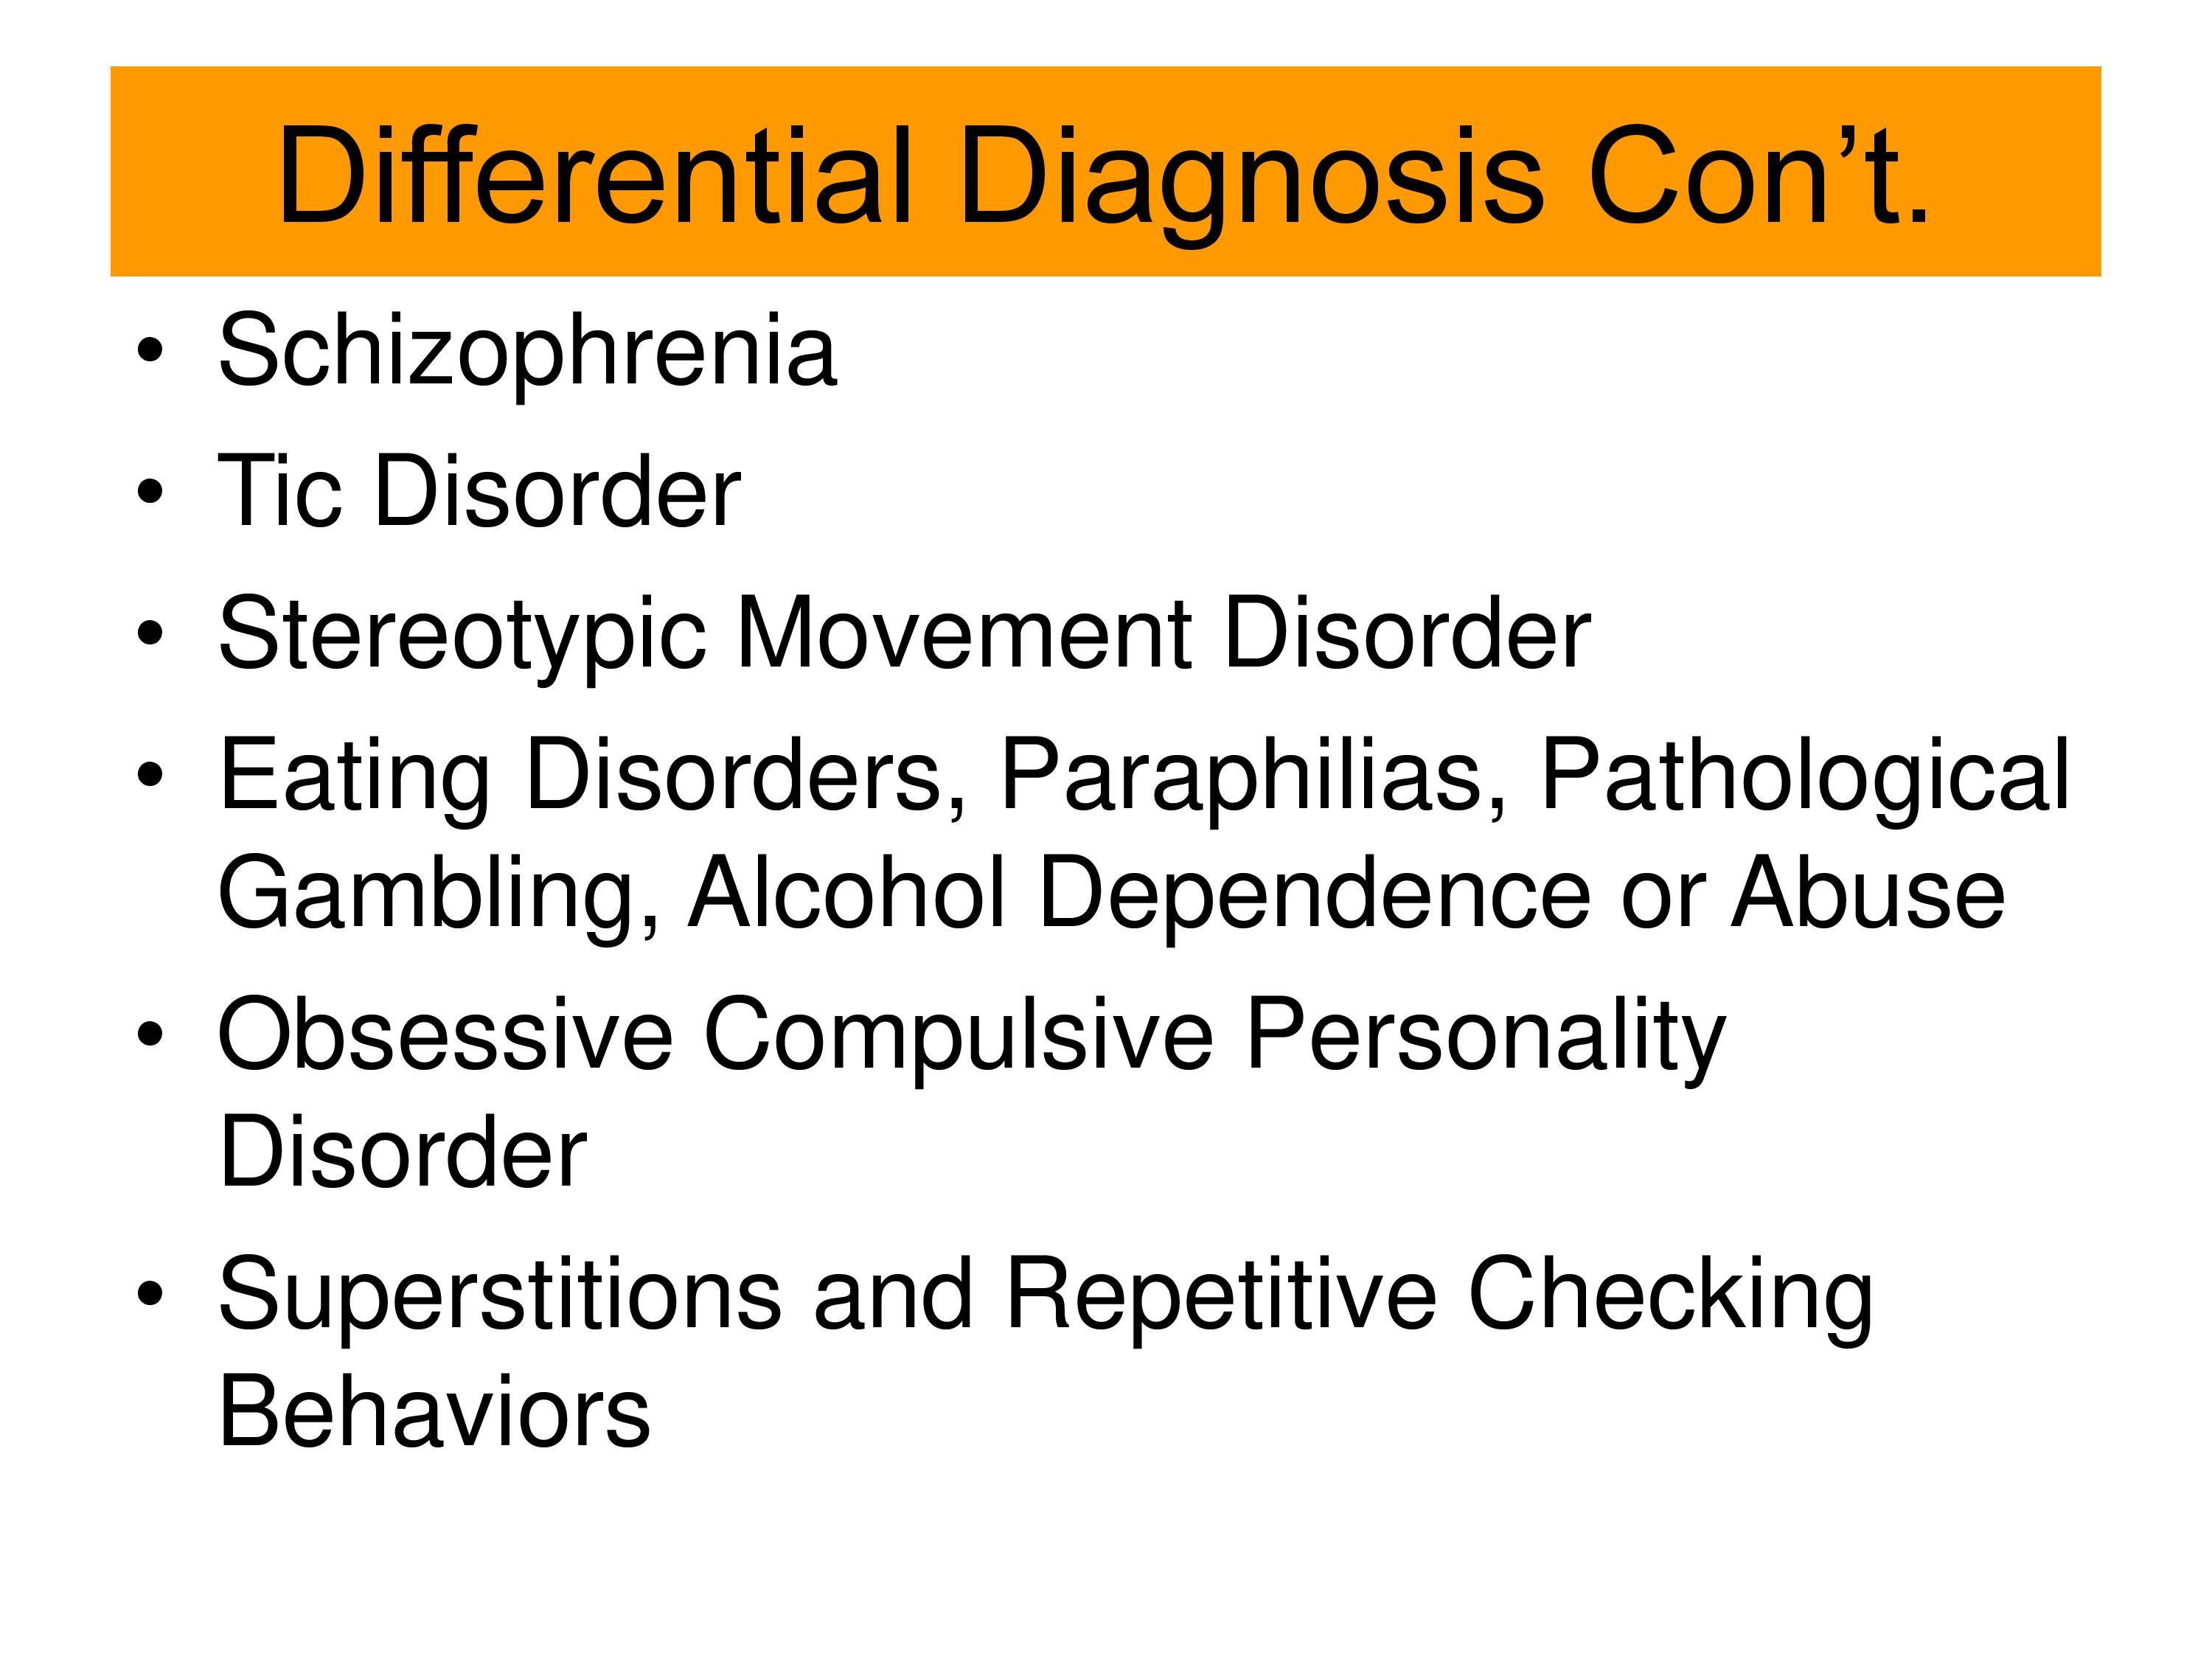 Personality disorder compulsive treatment for obsessive Psychological interventions